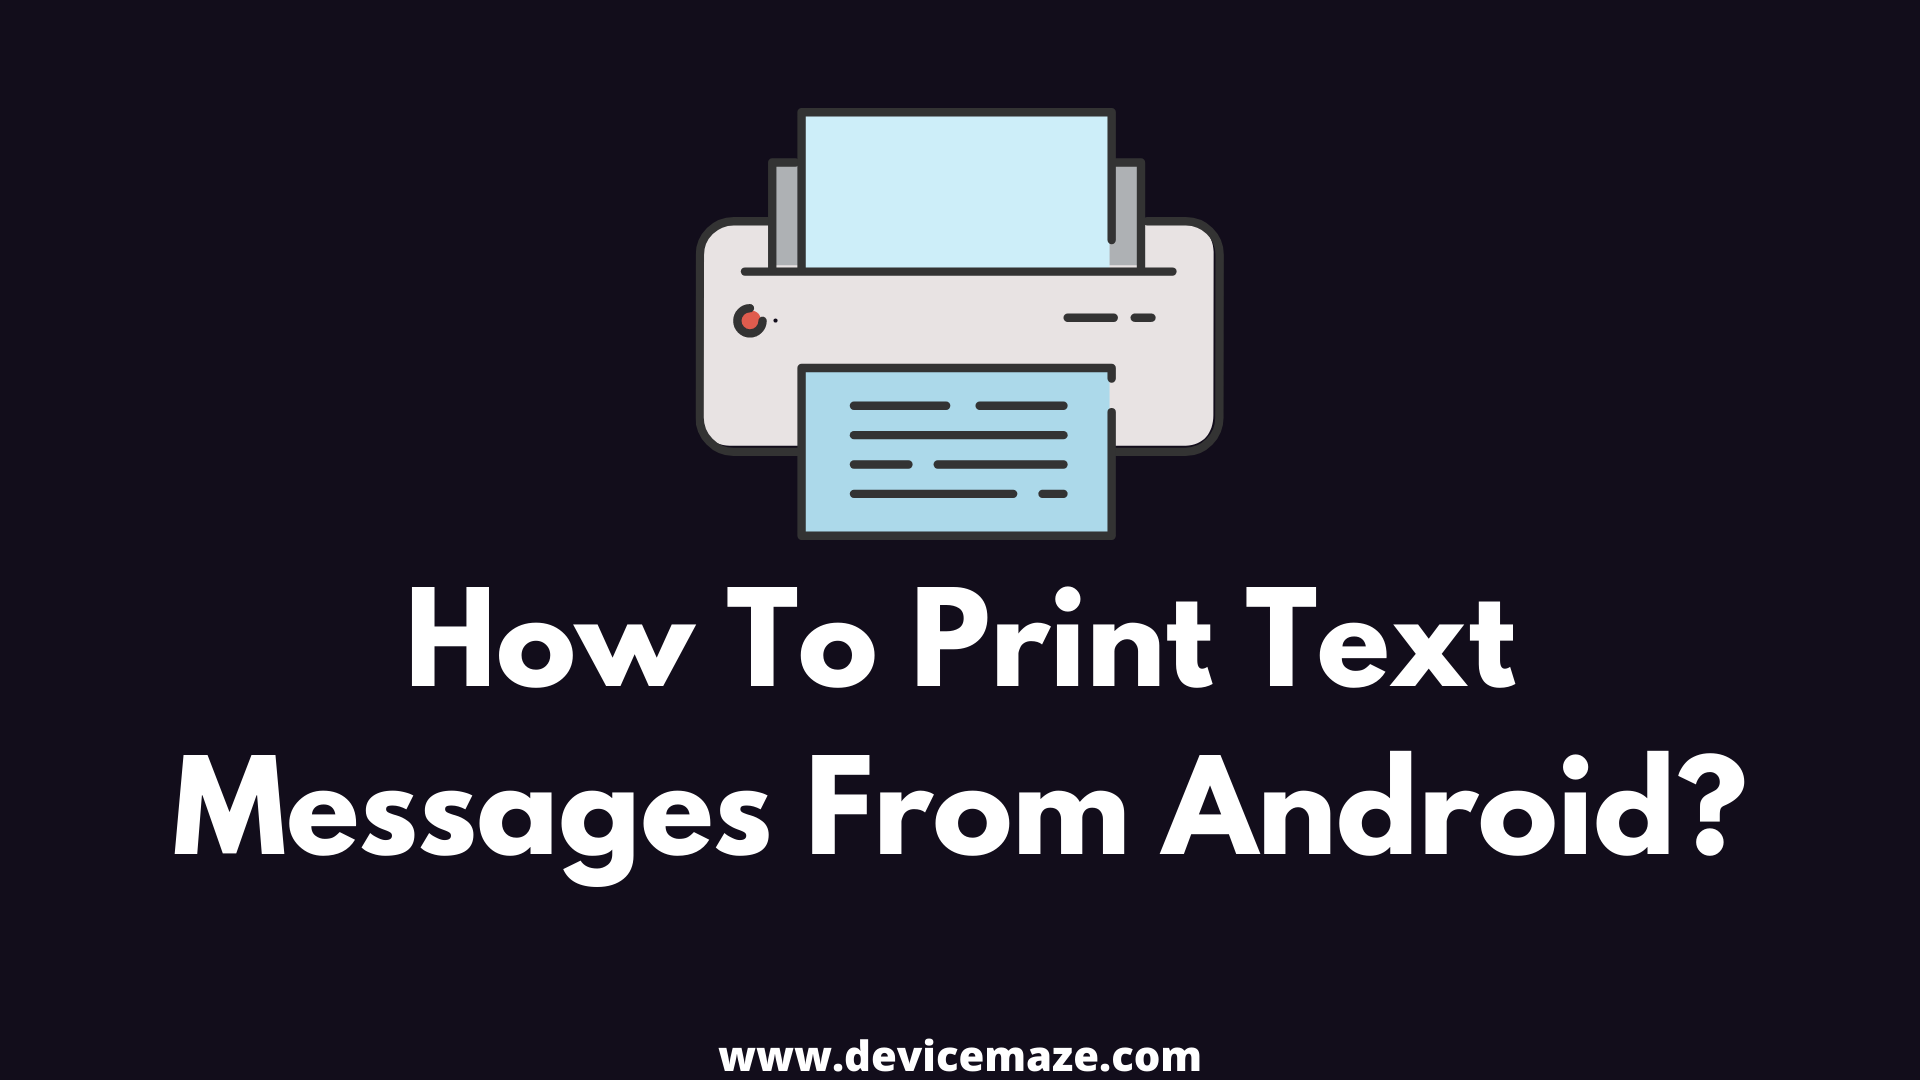 How To Print Text Messages From Android